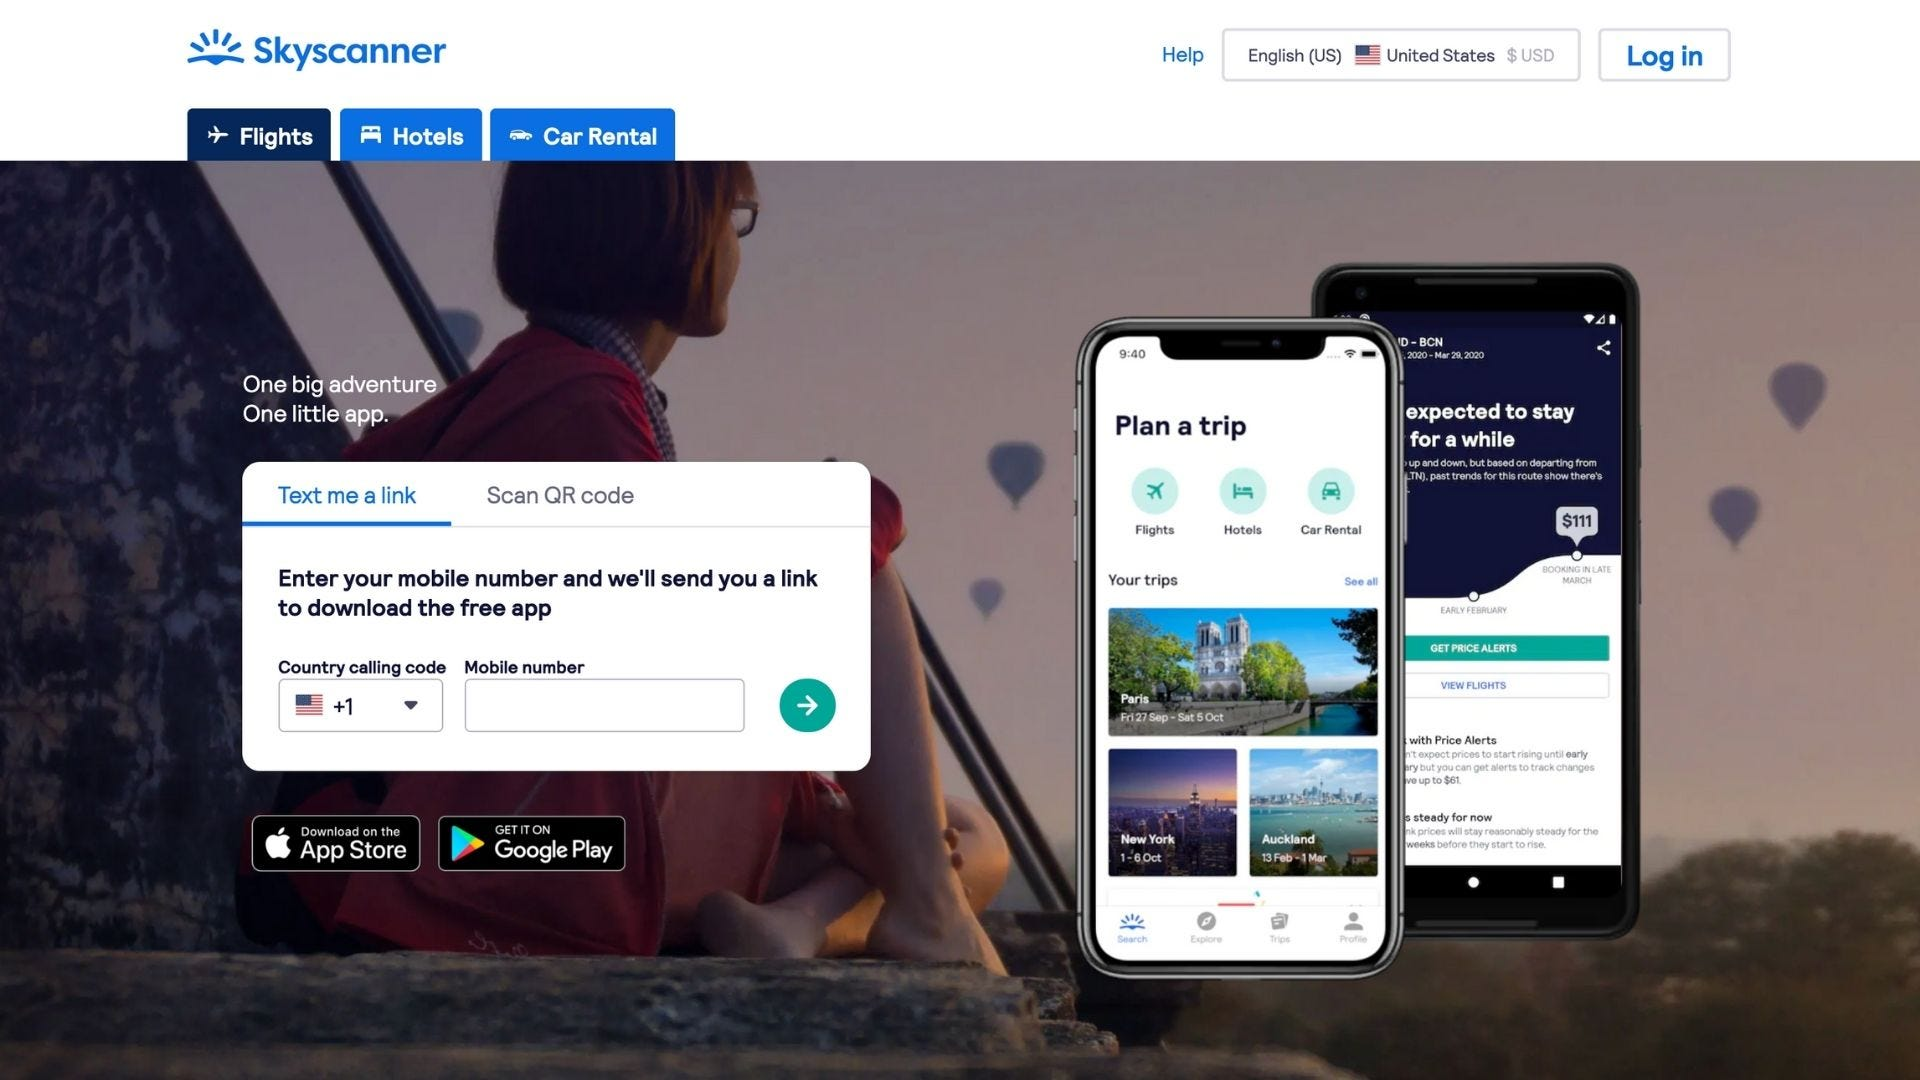 An advertisement shows the features of a flight booking app called Skyscanner.